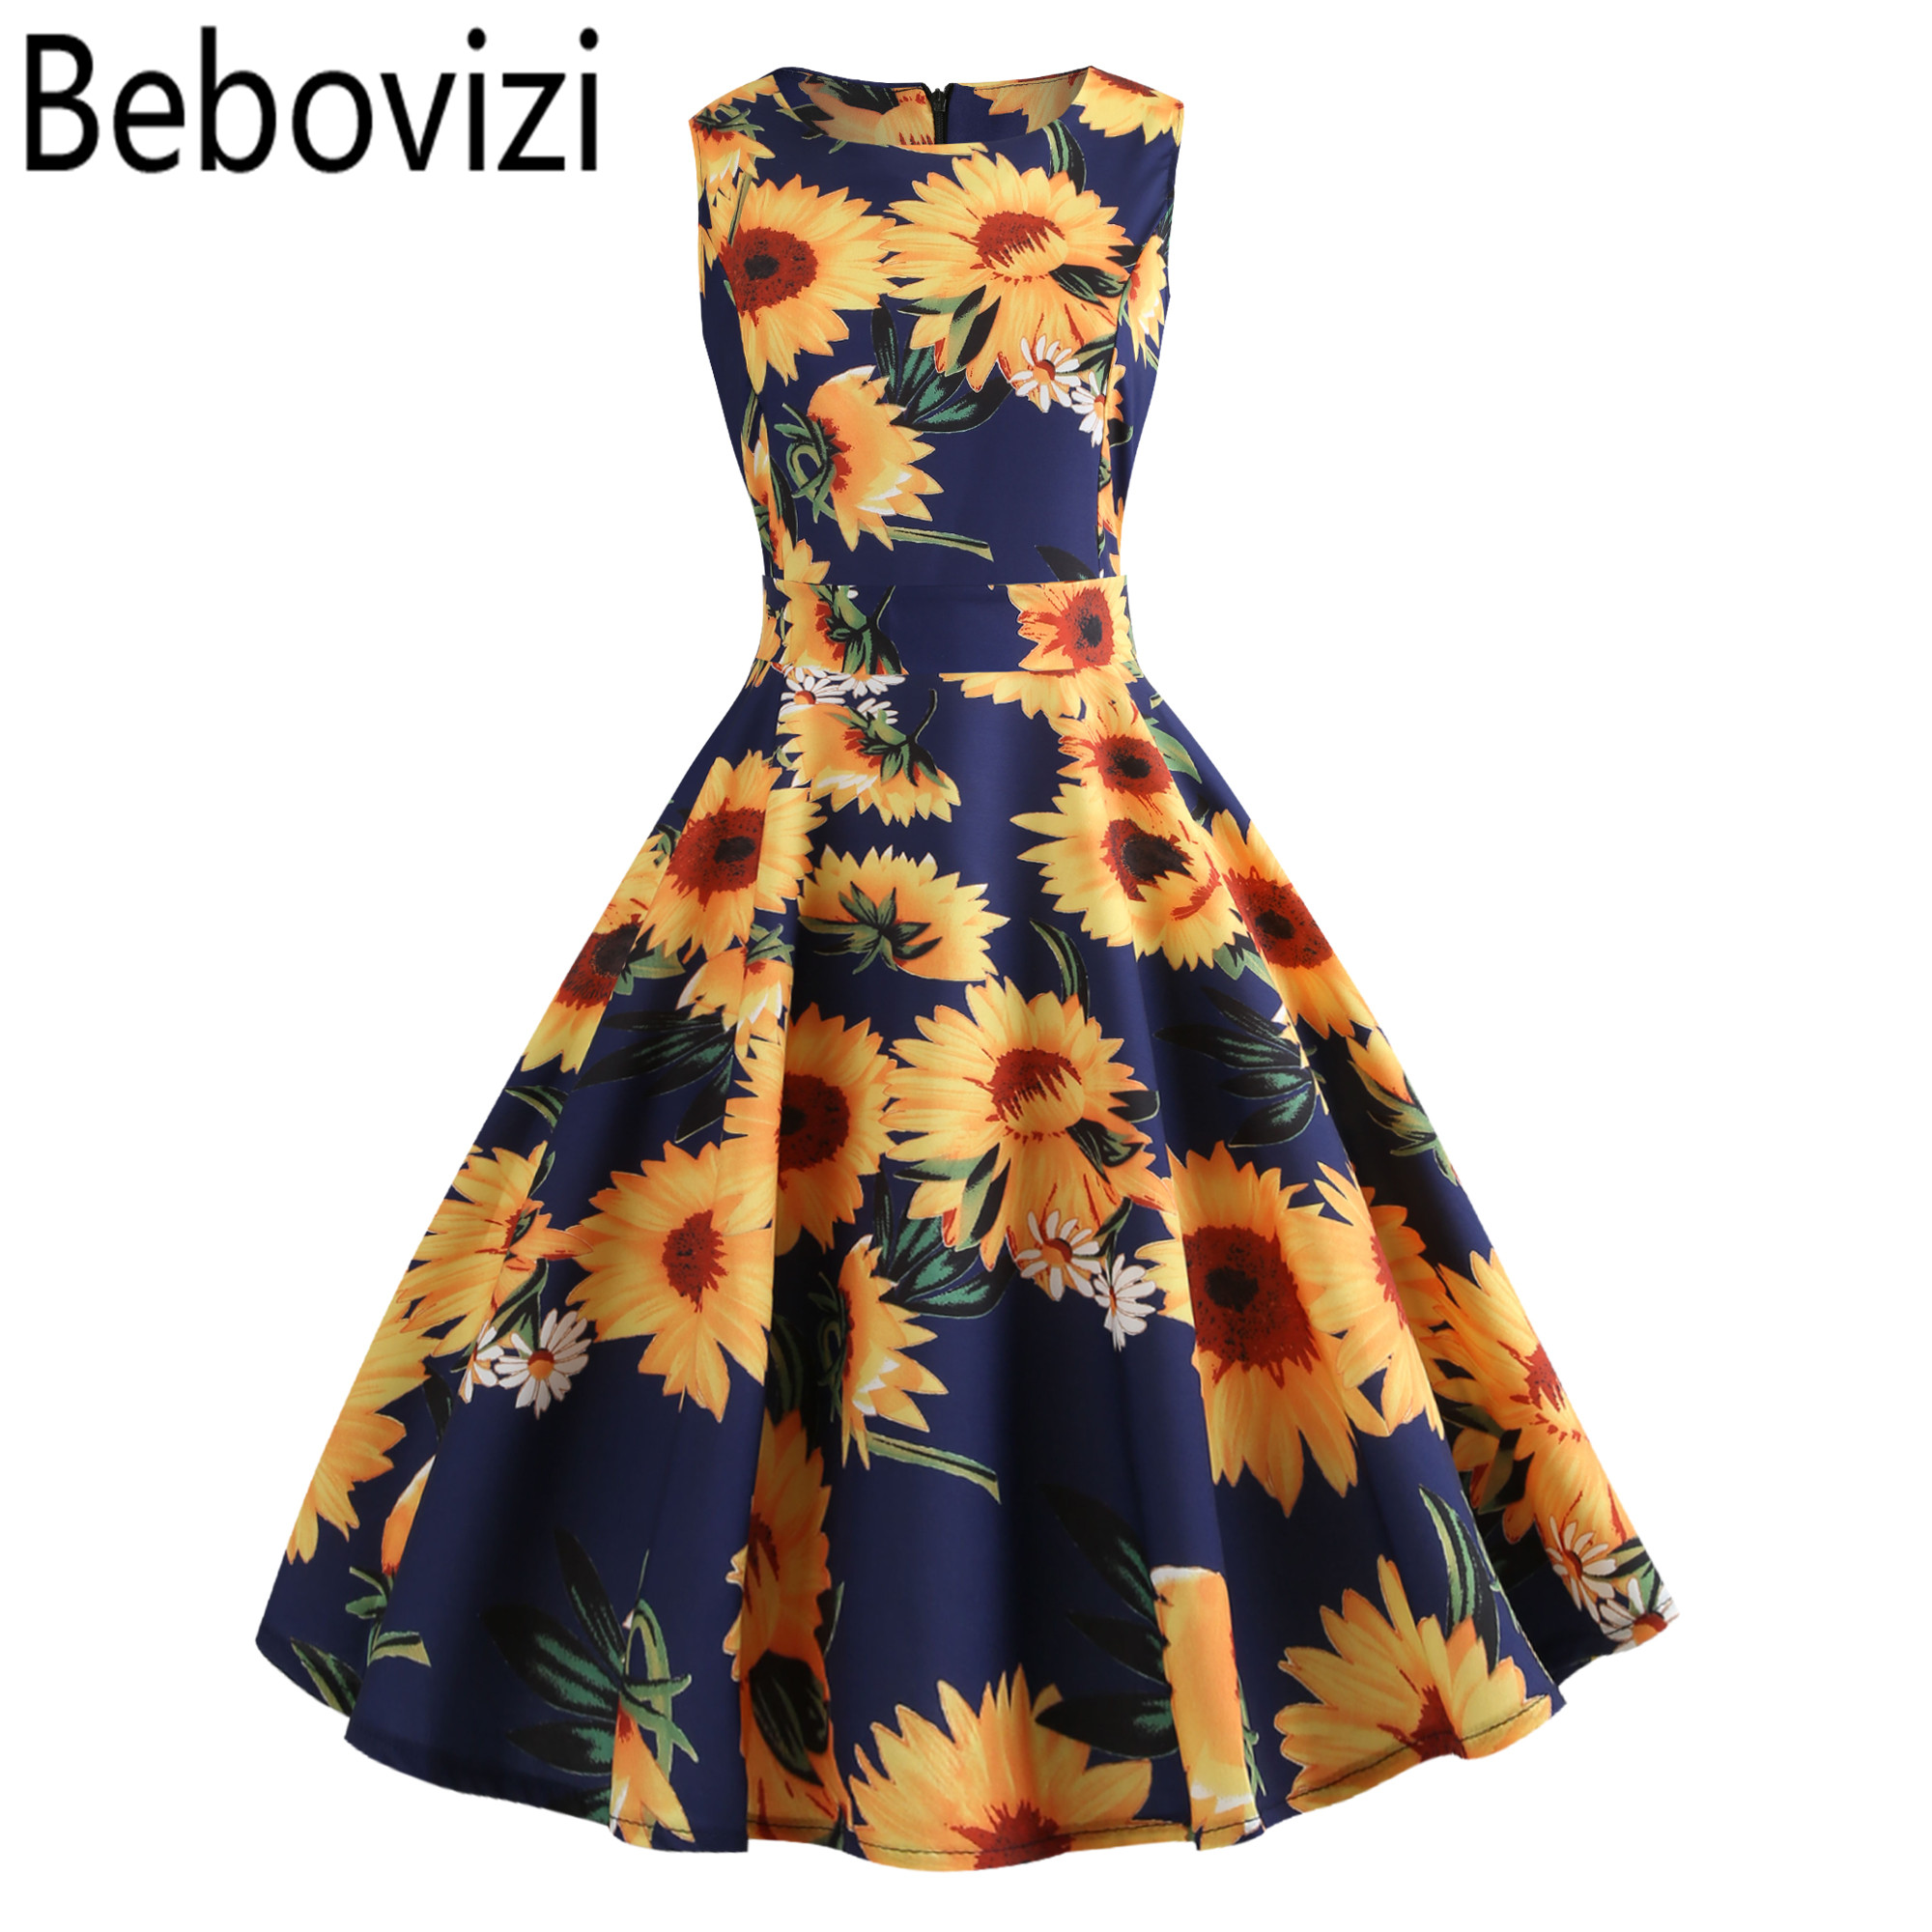 US $9.9 30% OFF Fashion Sunflower Plus Size Vintage Dress Robe Femme Floral  Print Casual Elegant Summer Clothes Women O neck Party Midi Dresses-in ...